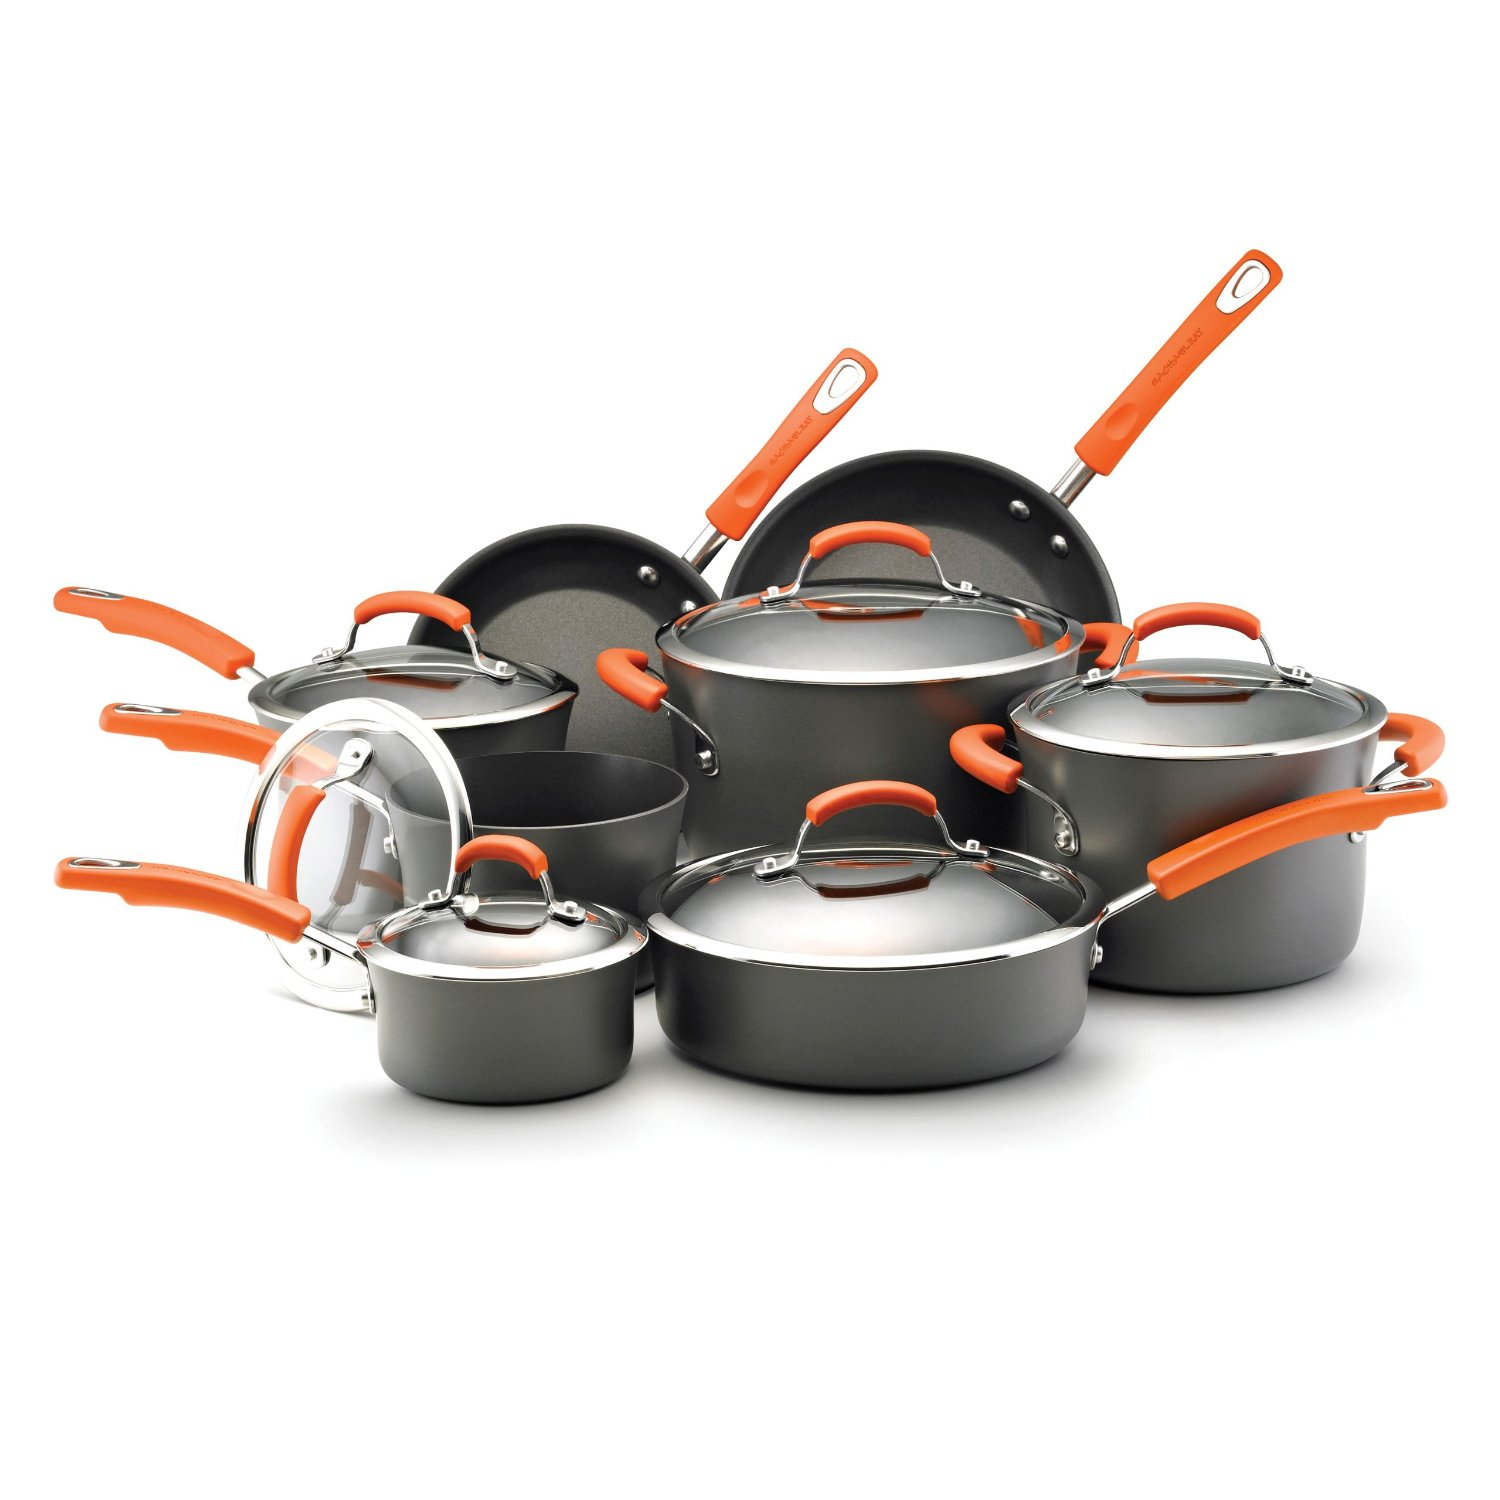 deals were found for Pots Pans. Deals are available from 8 stores and 24 brands. An additional discount is available for 21 items. Last updated on November 25, Scanning all available deals for Pots Pans shows that the average price across all deals is $